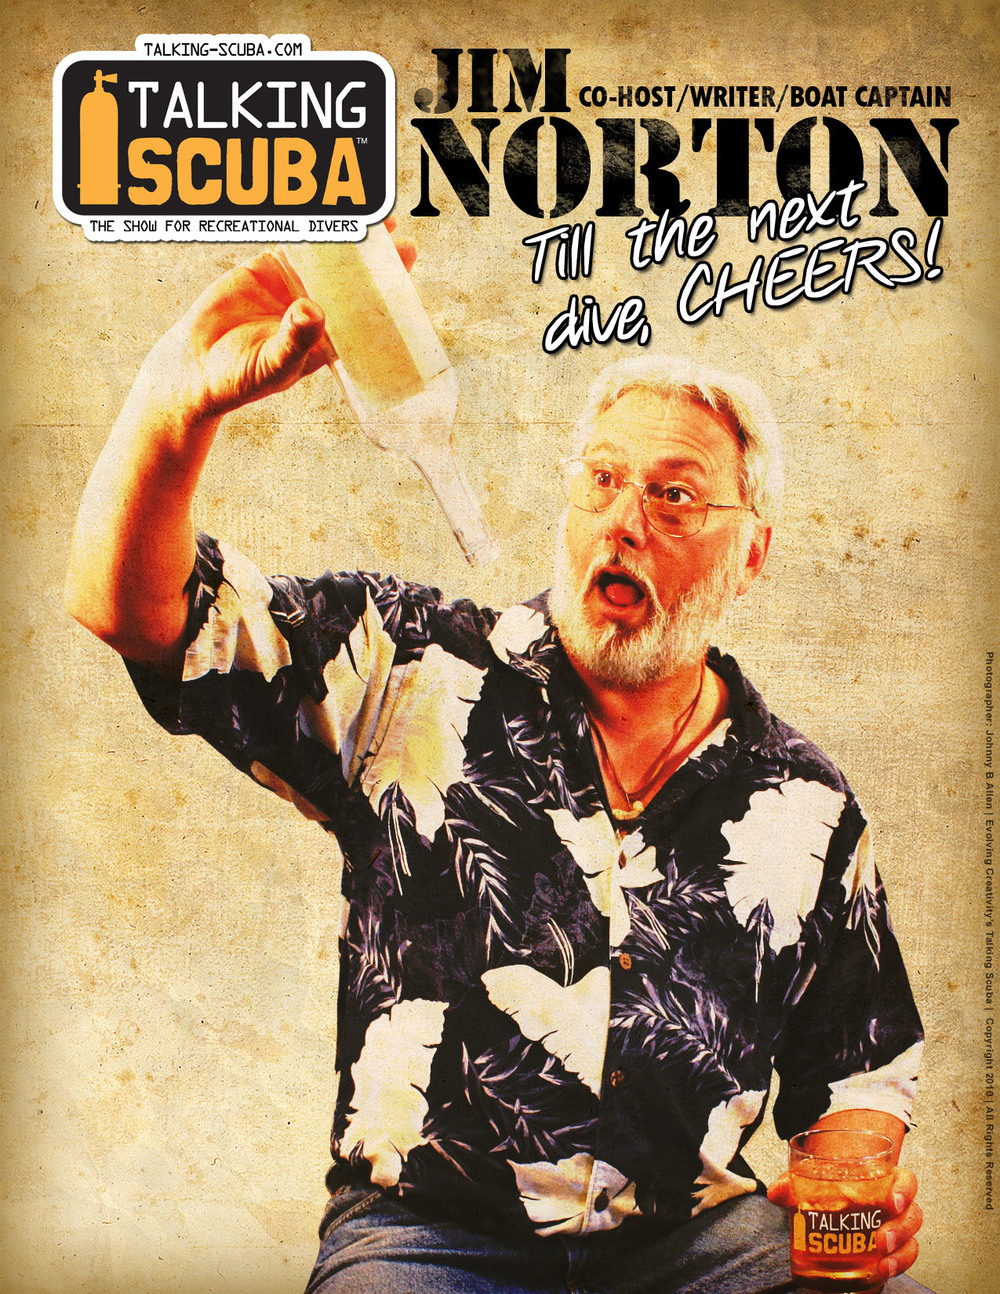 Promotional Poster for Talking Scuba with Jim Norton